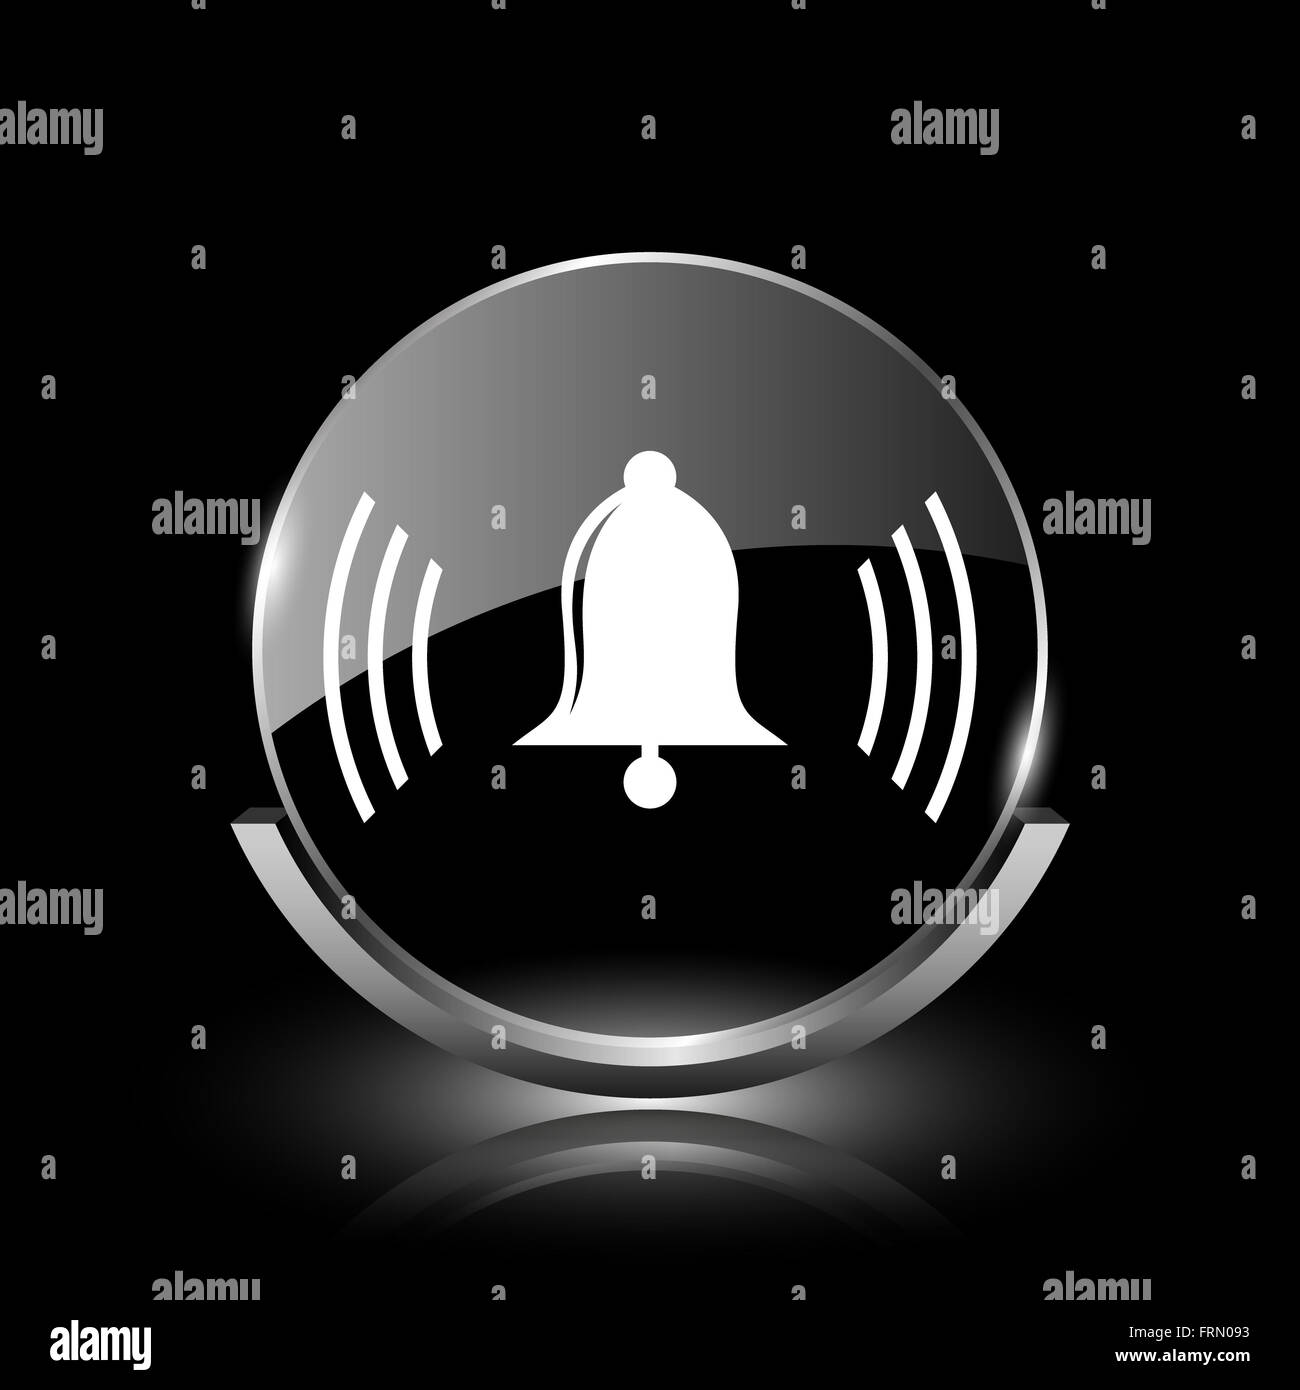 Shiny glossy glass icon on black background - Stock Image